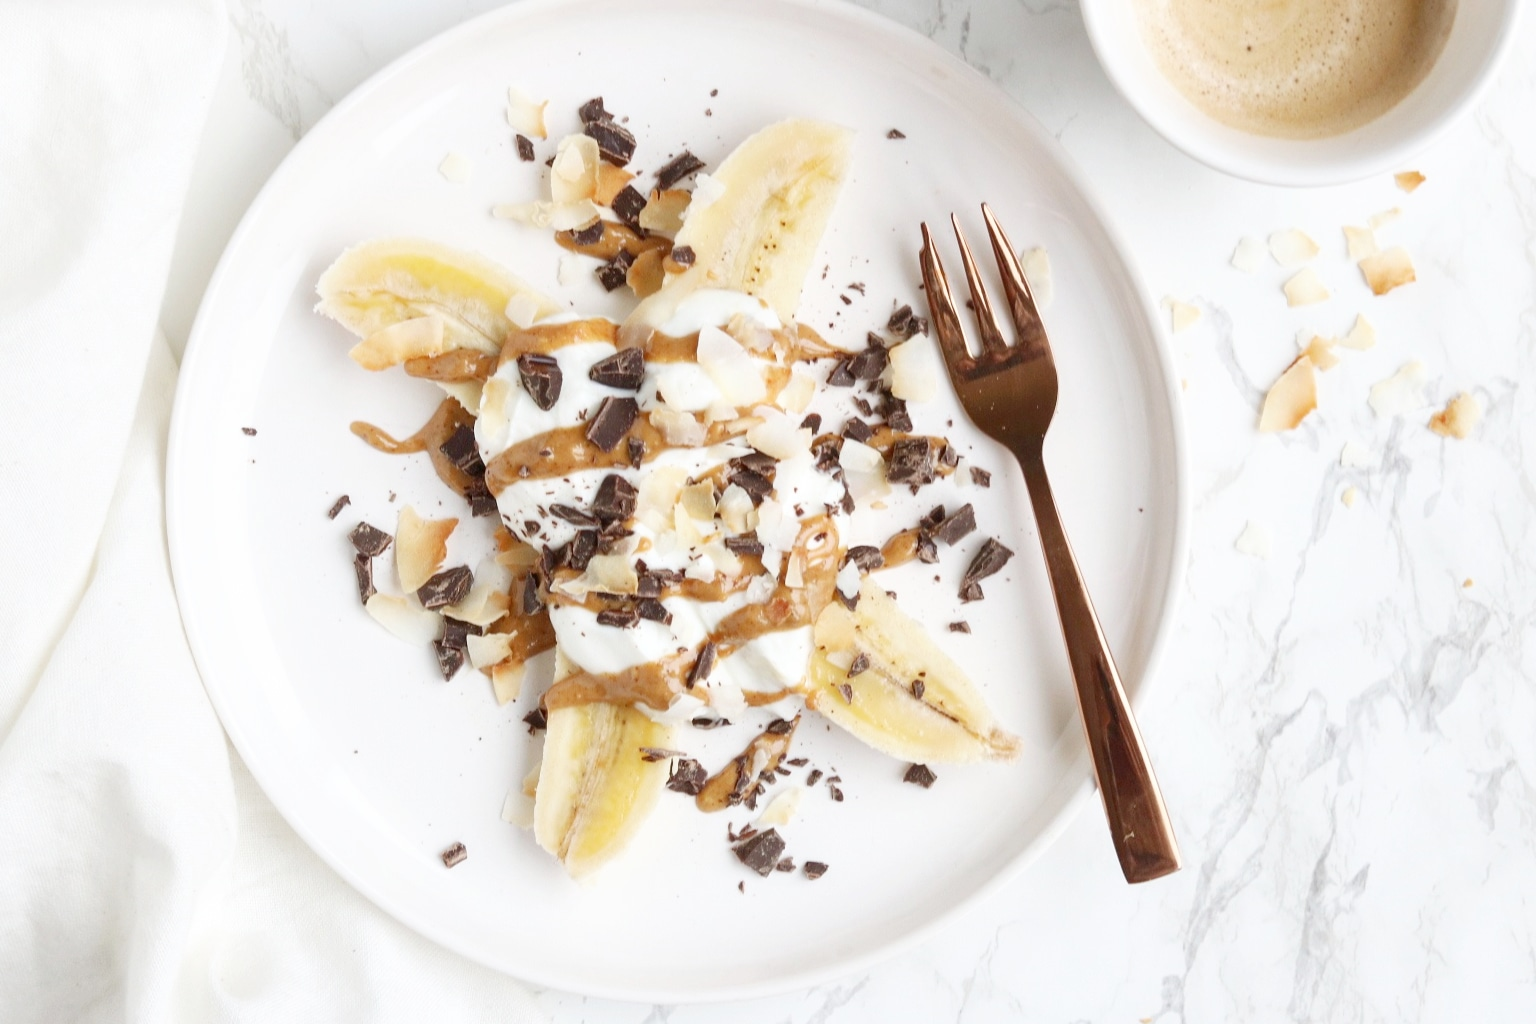 EASY 5: CHUNKY MONKEY BANANEN SPLIT